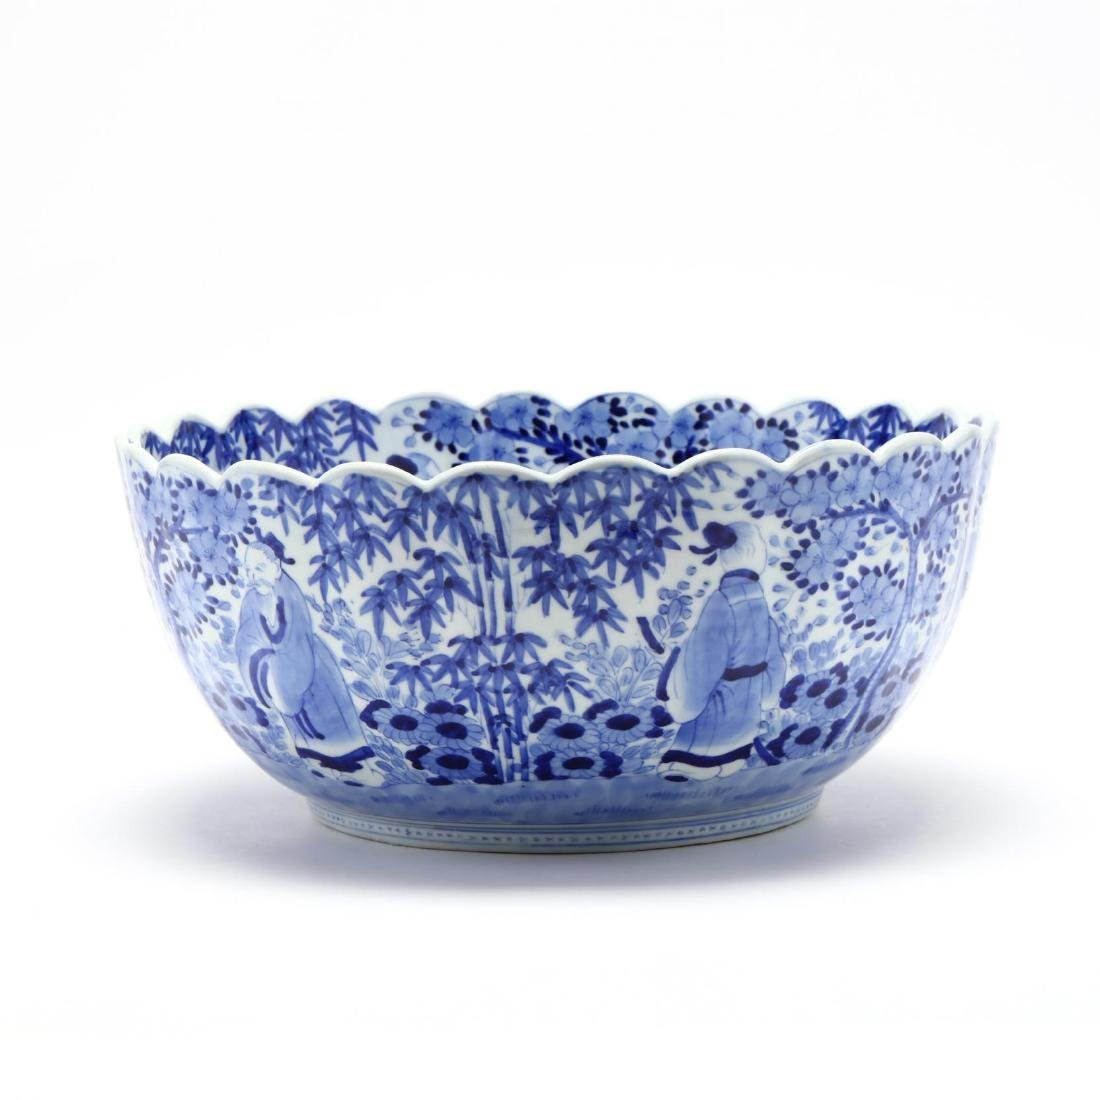 A Blue and White Punch Bowl with Scalloped Rim - 5